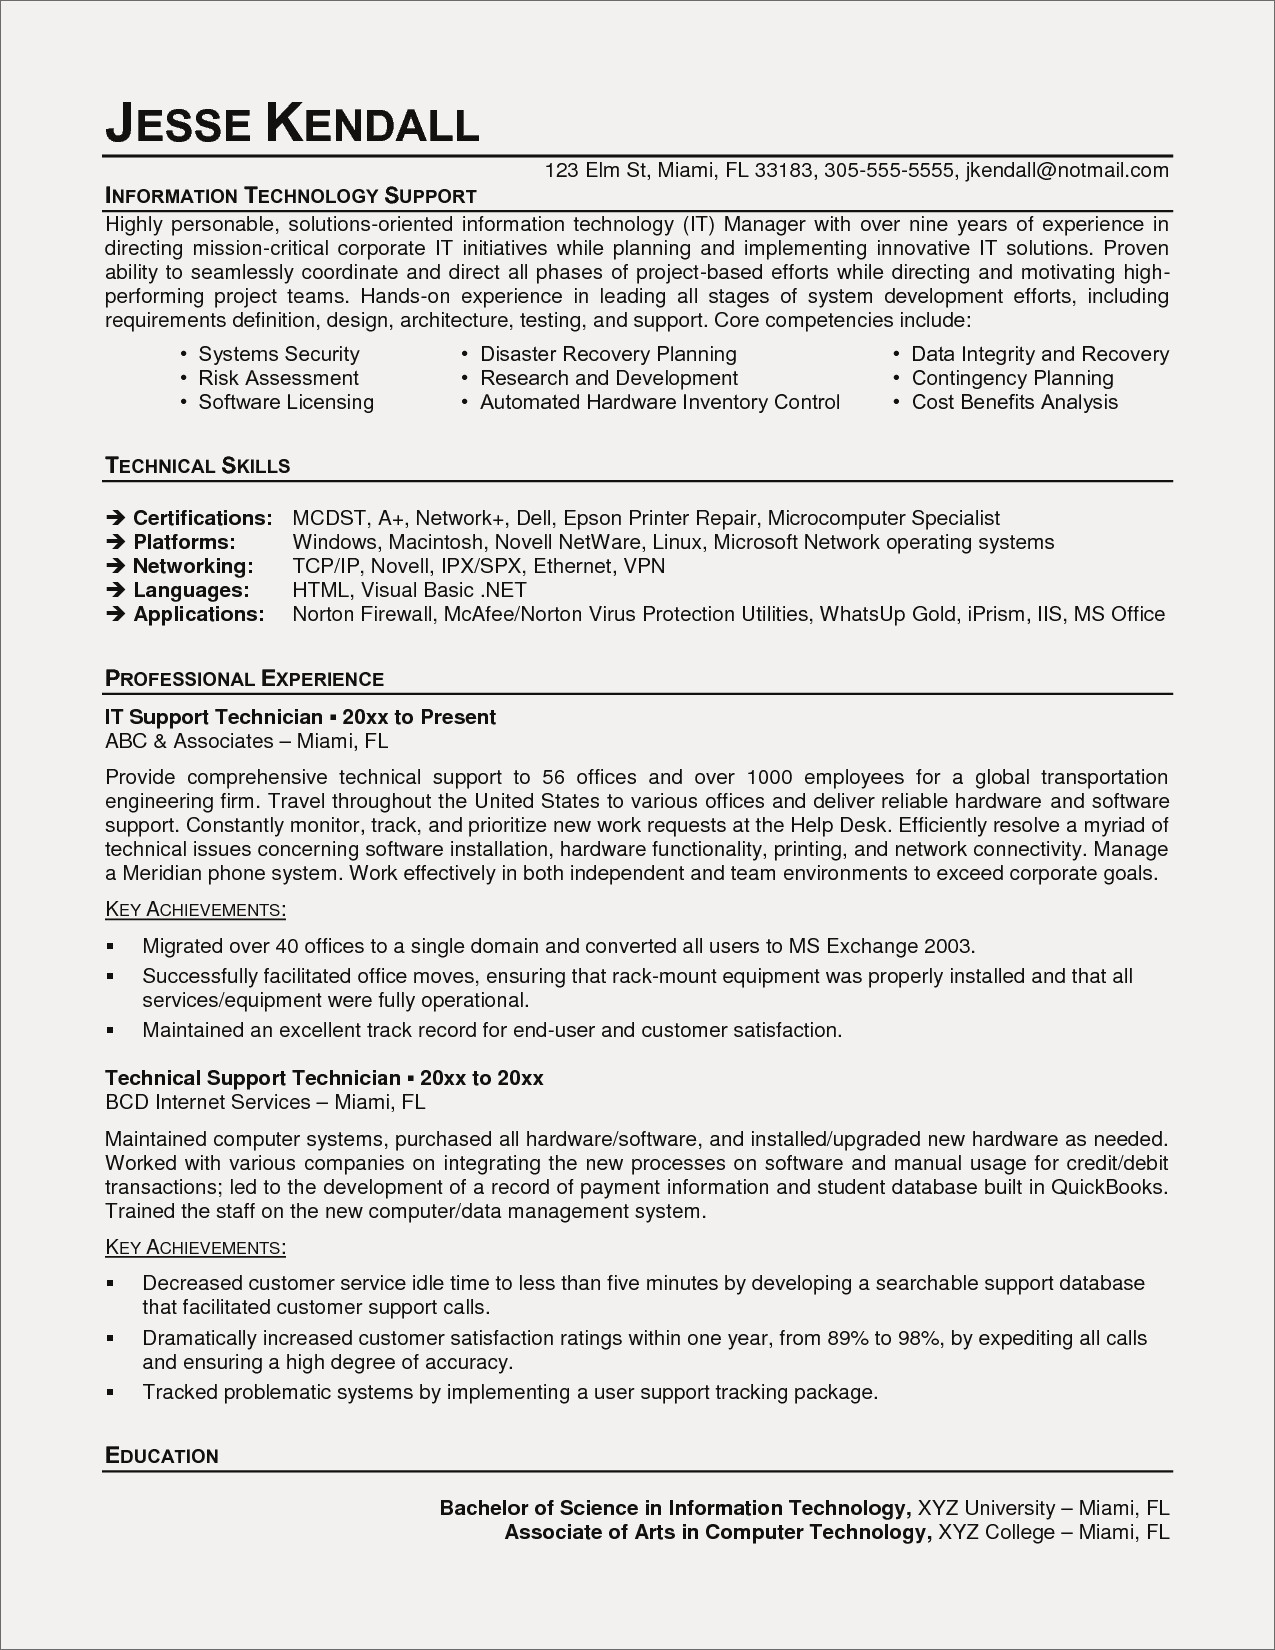 automotive professionals resume example-Automotive Resume format Best Auto Mechanic Resume American Resume Sample New Student Resume 0d 16-k